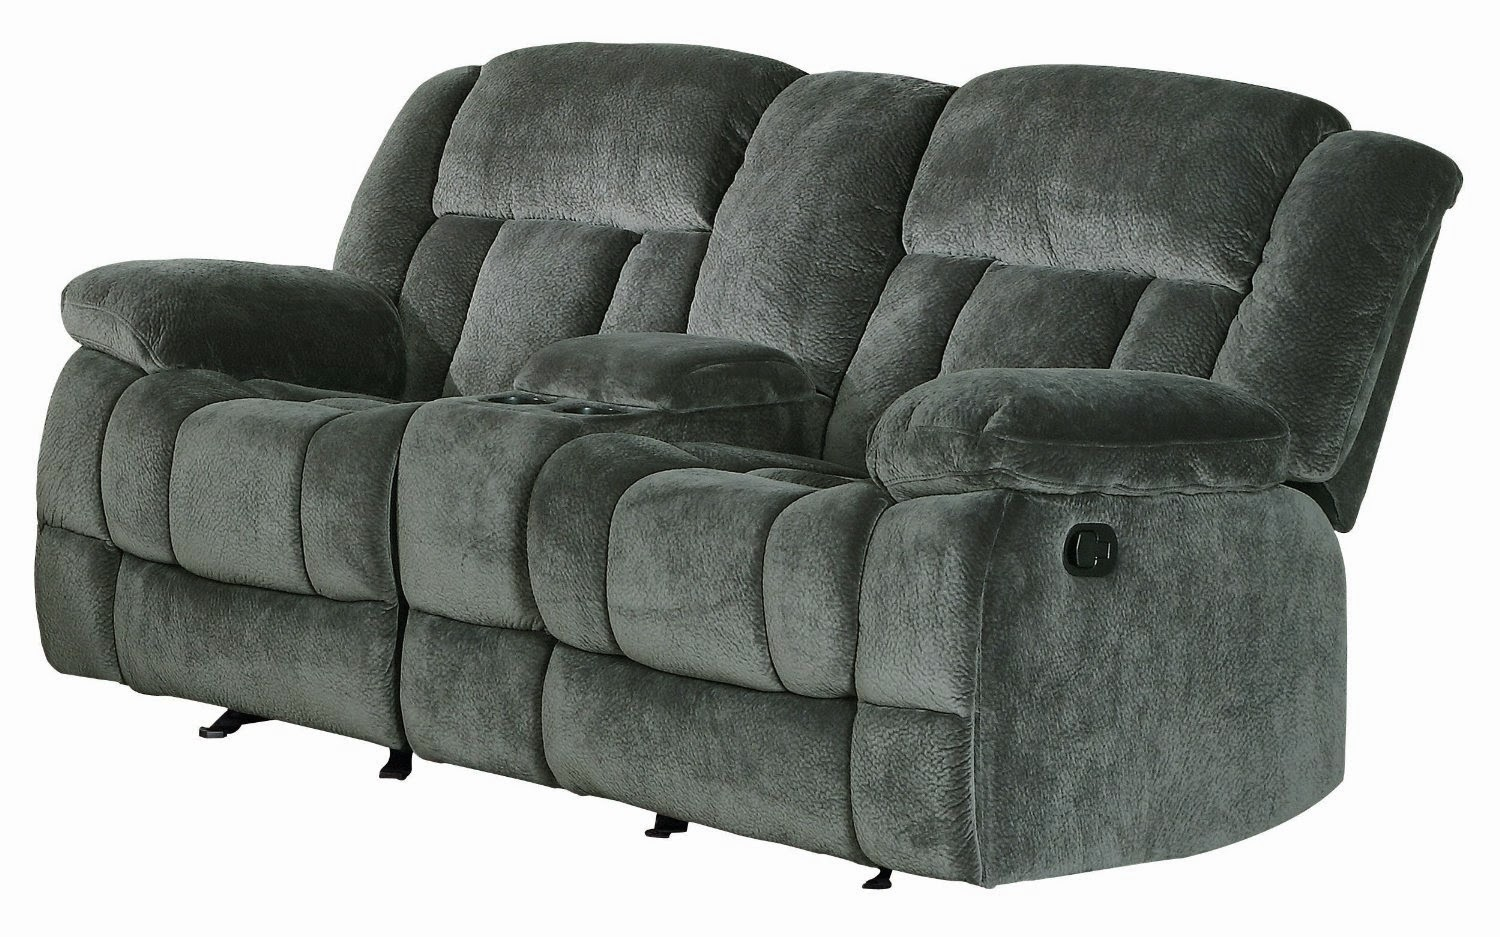 Best Place To Buy Sectional Sofa Fusion Furniture 1140 Grande Mist Where Is The Recliner 2 Seat